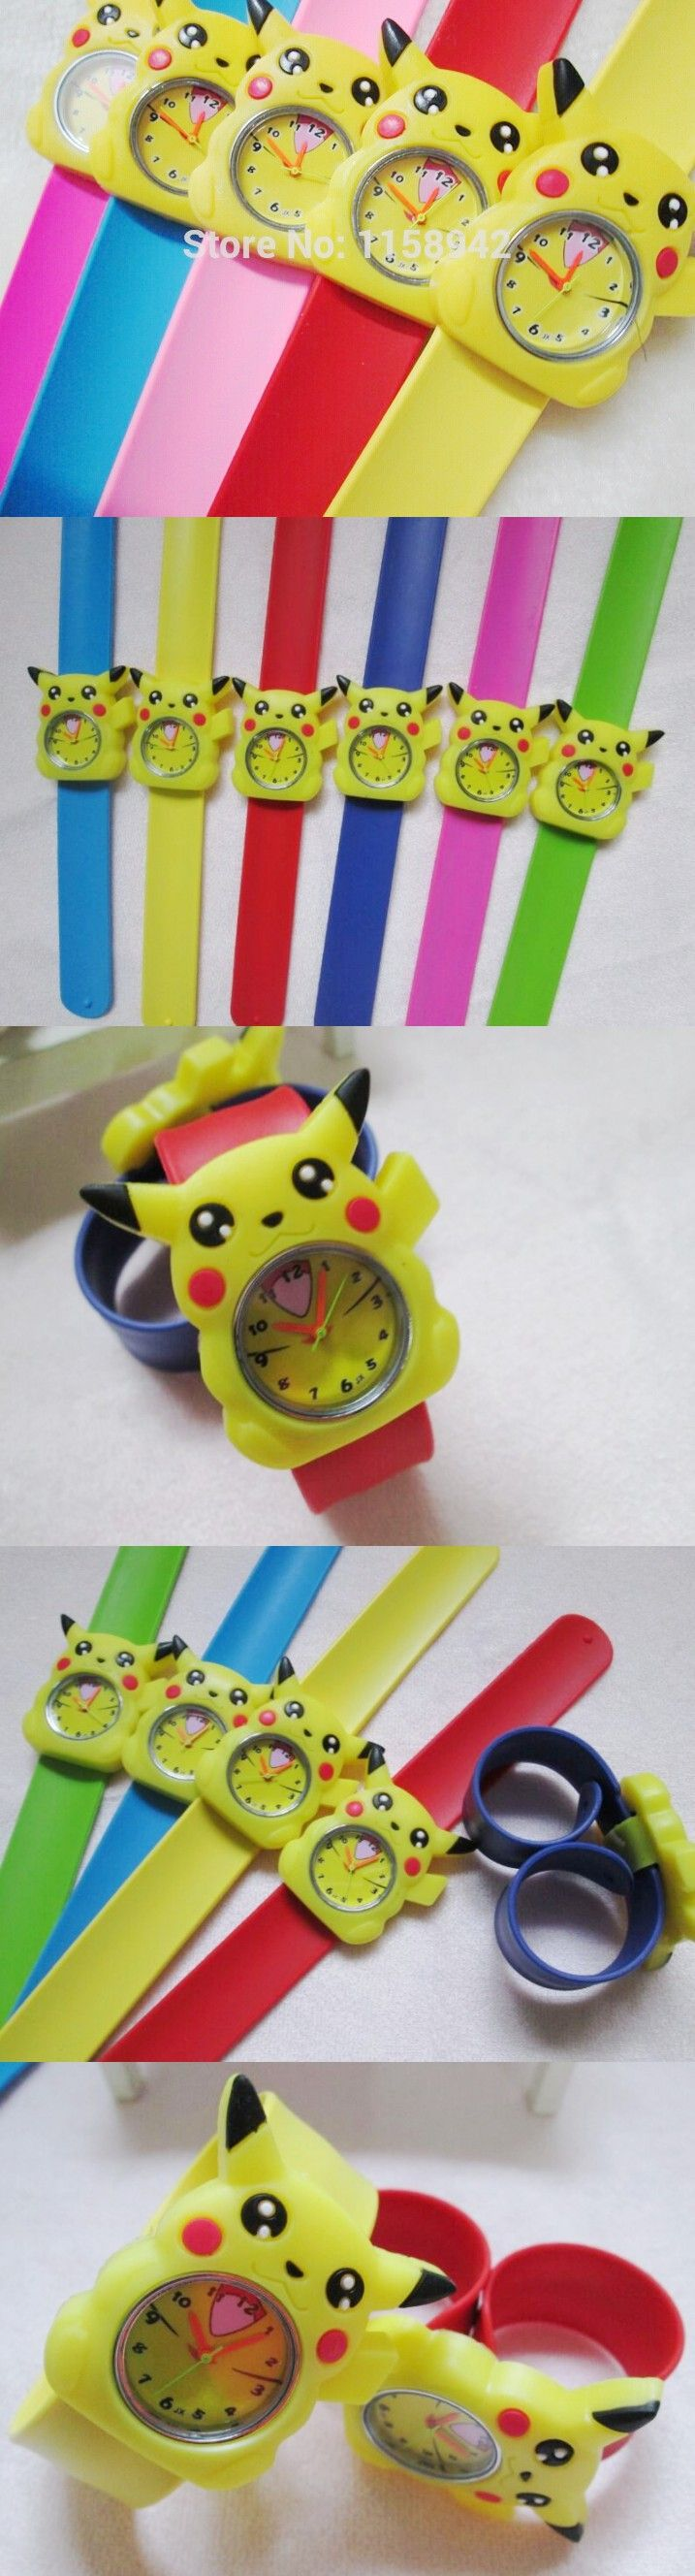 Kids colorful jelly silicone clap clock , children lovely slap watch free shipping 10pcs/lot kids Pokemon watches pikachu watch